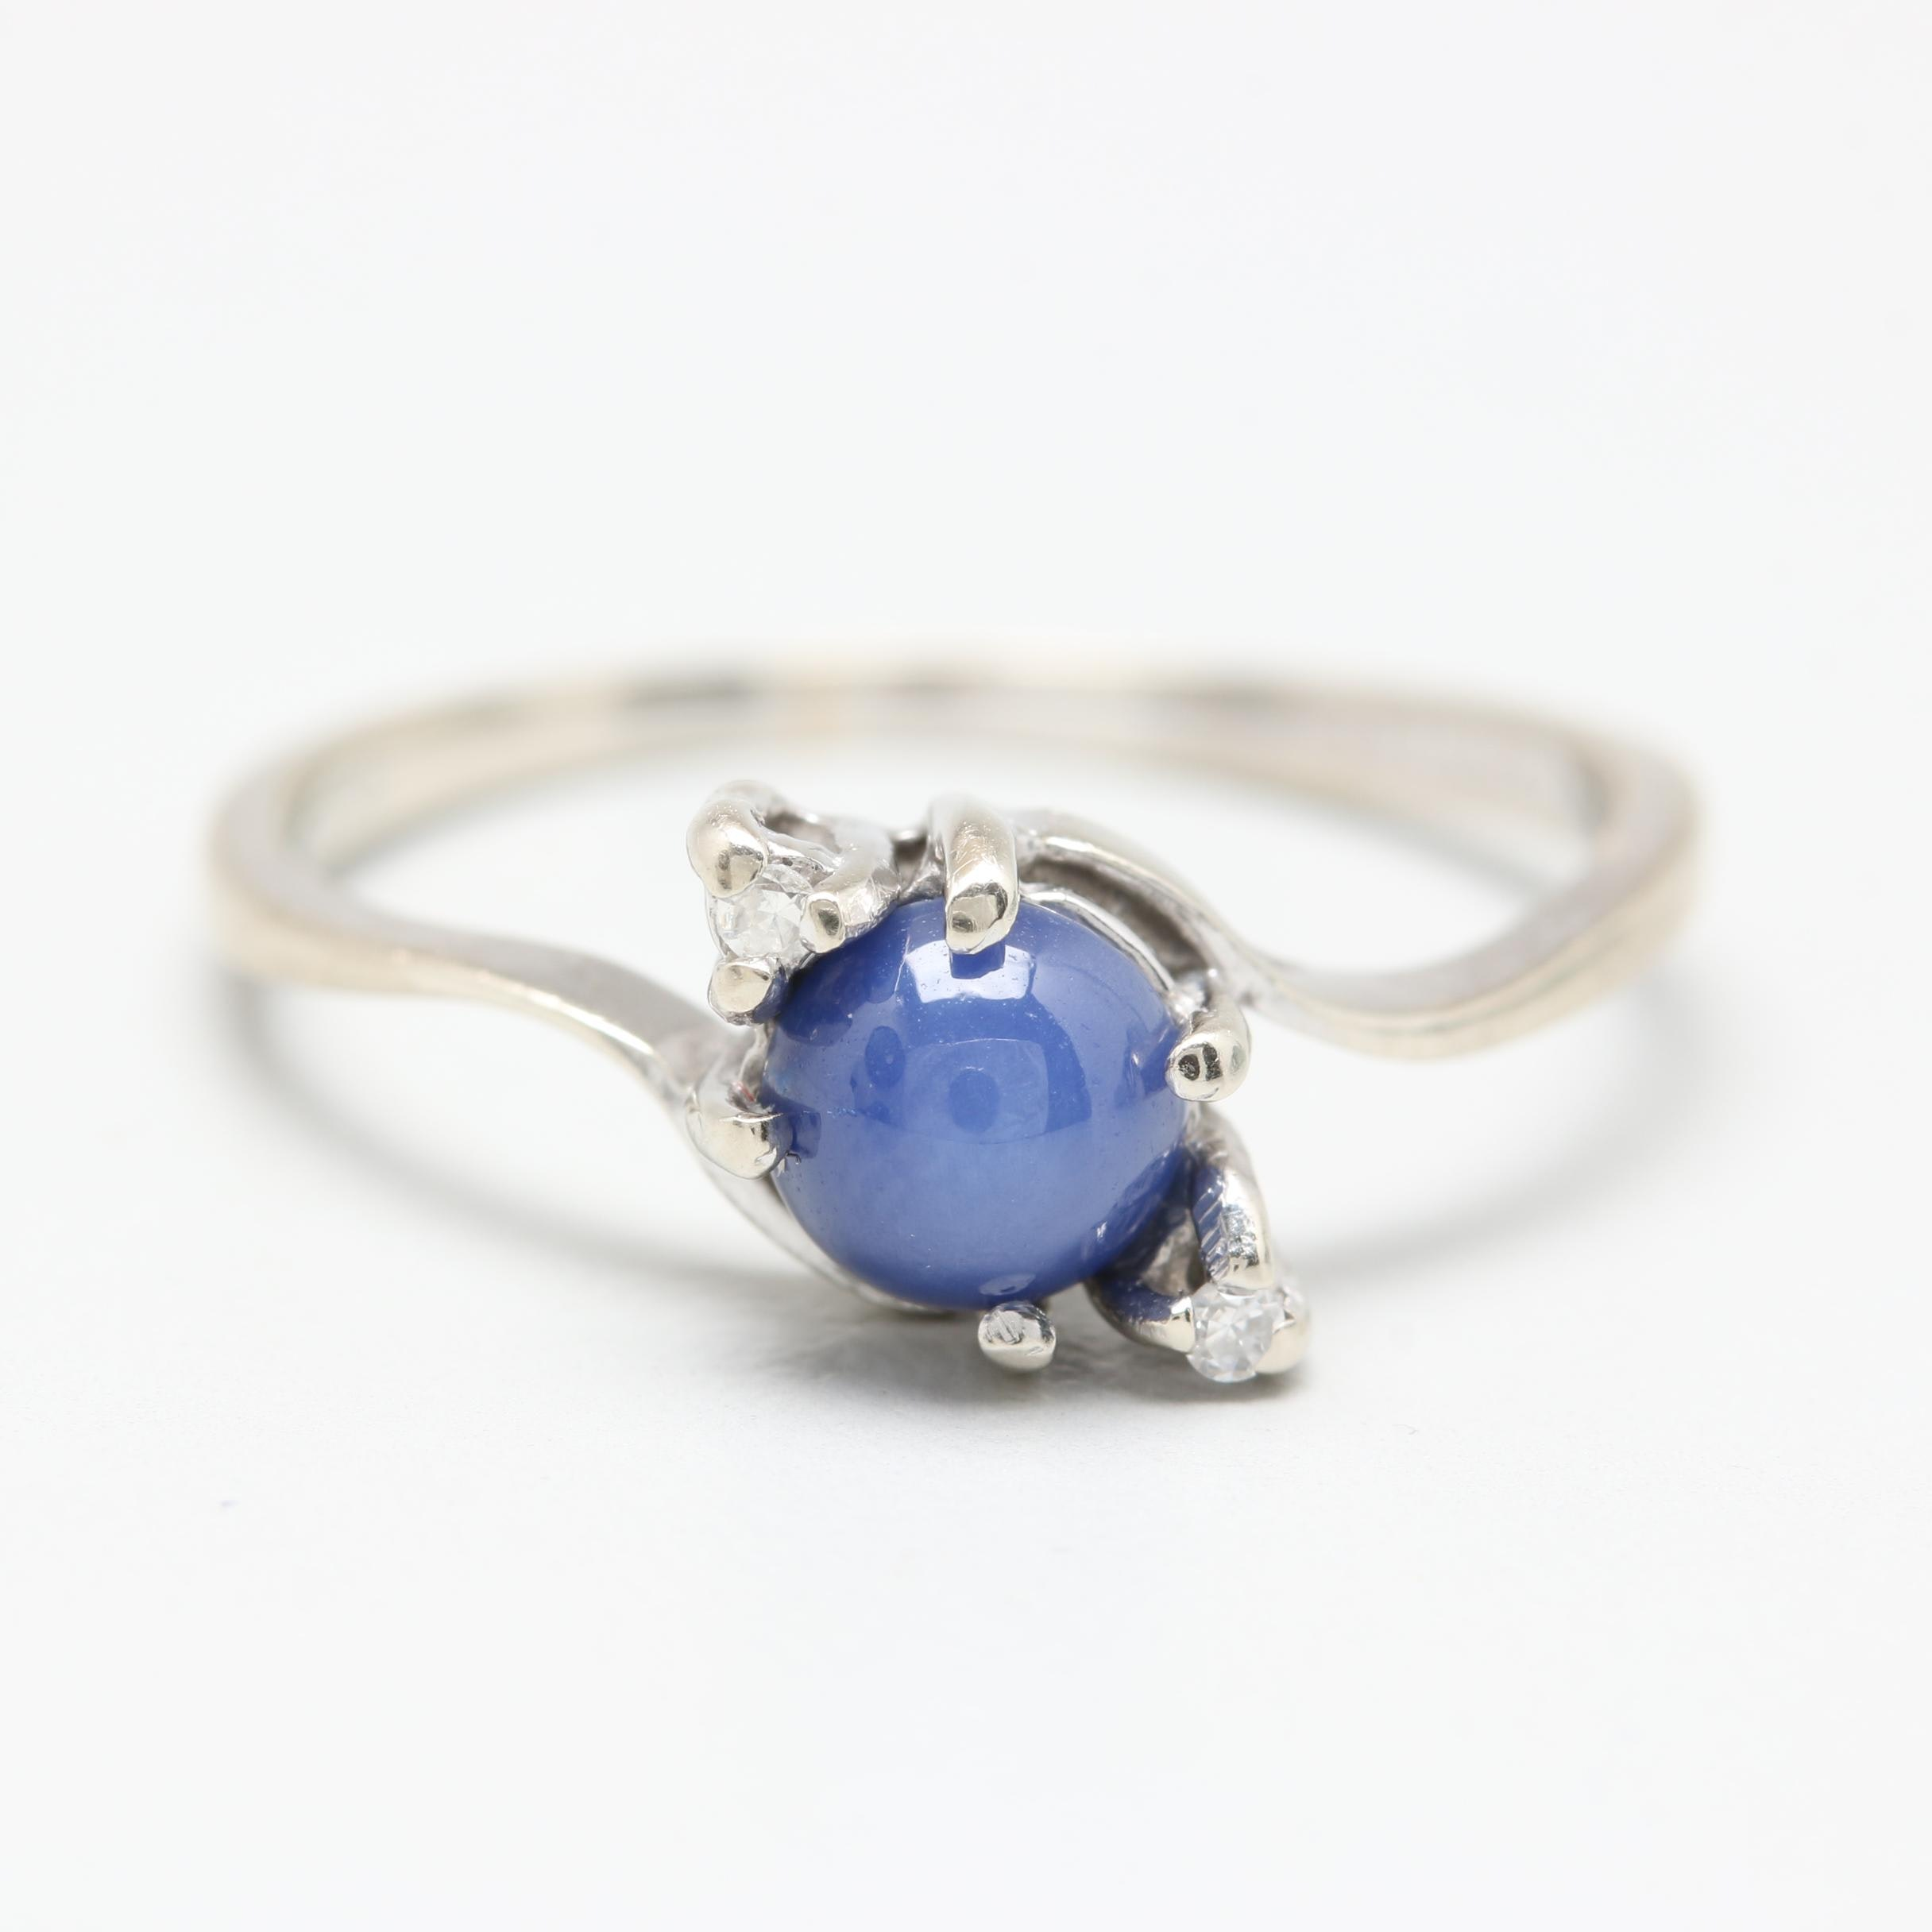 10K White Gold Synthetic Star Sapphire and Diamond Ring